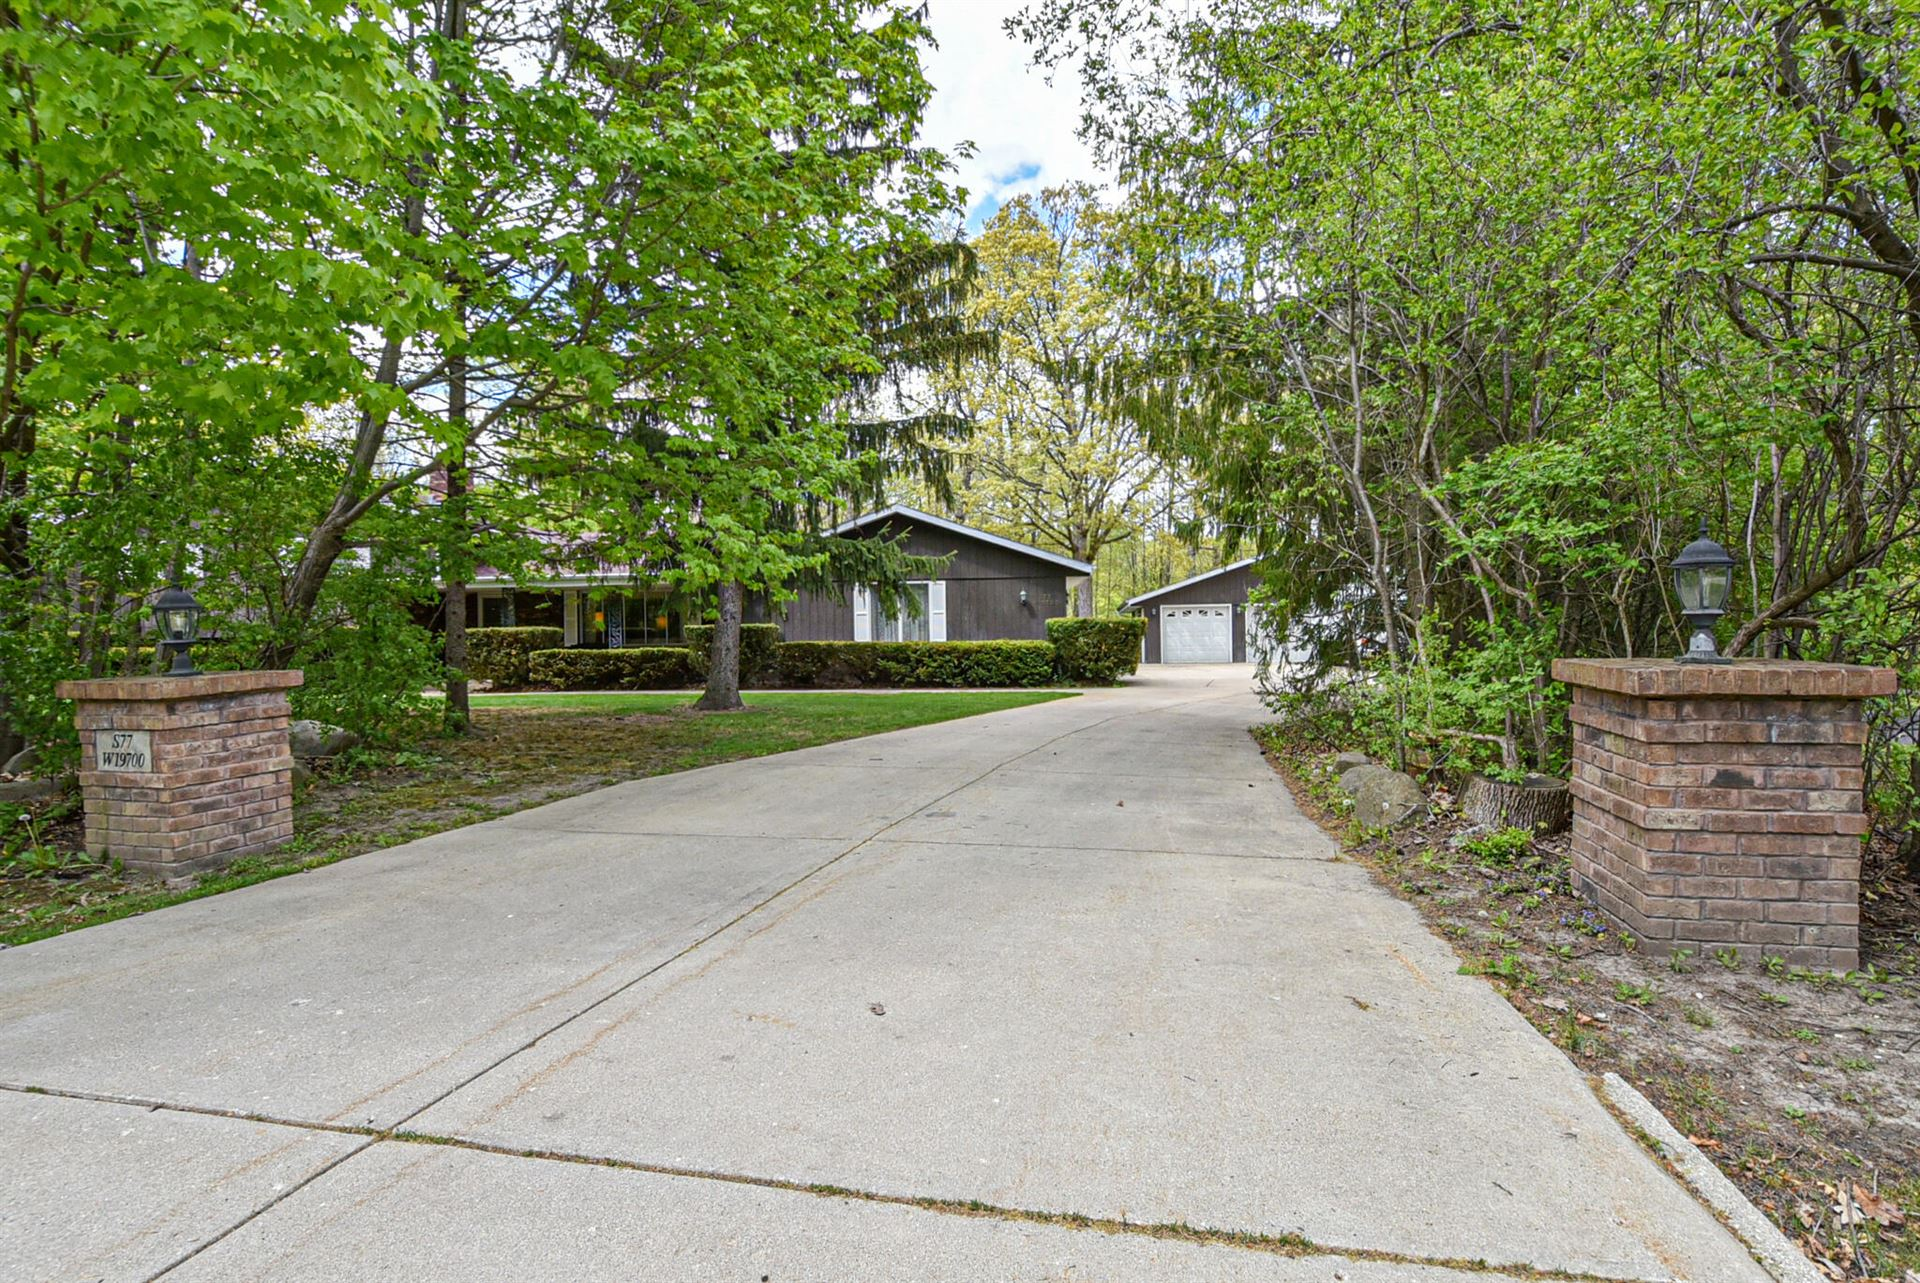 S77W19700 Sunny Hill Dr, Muskego, WI 53150 - MLS#: 1744815